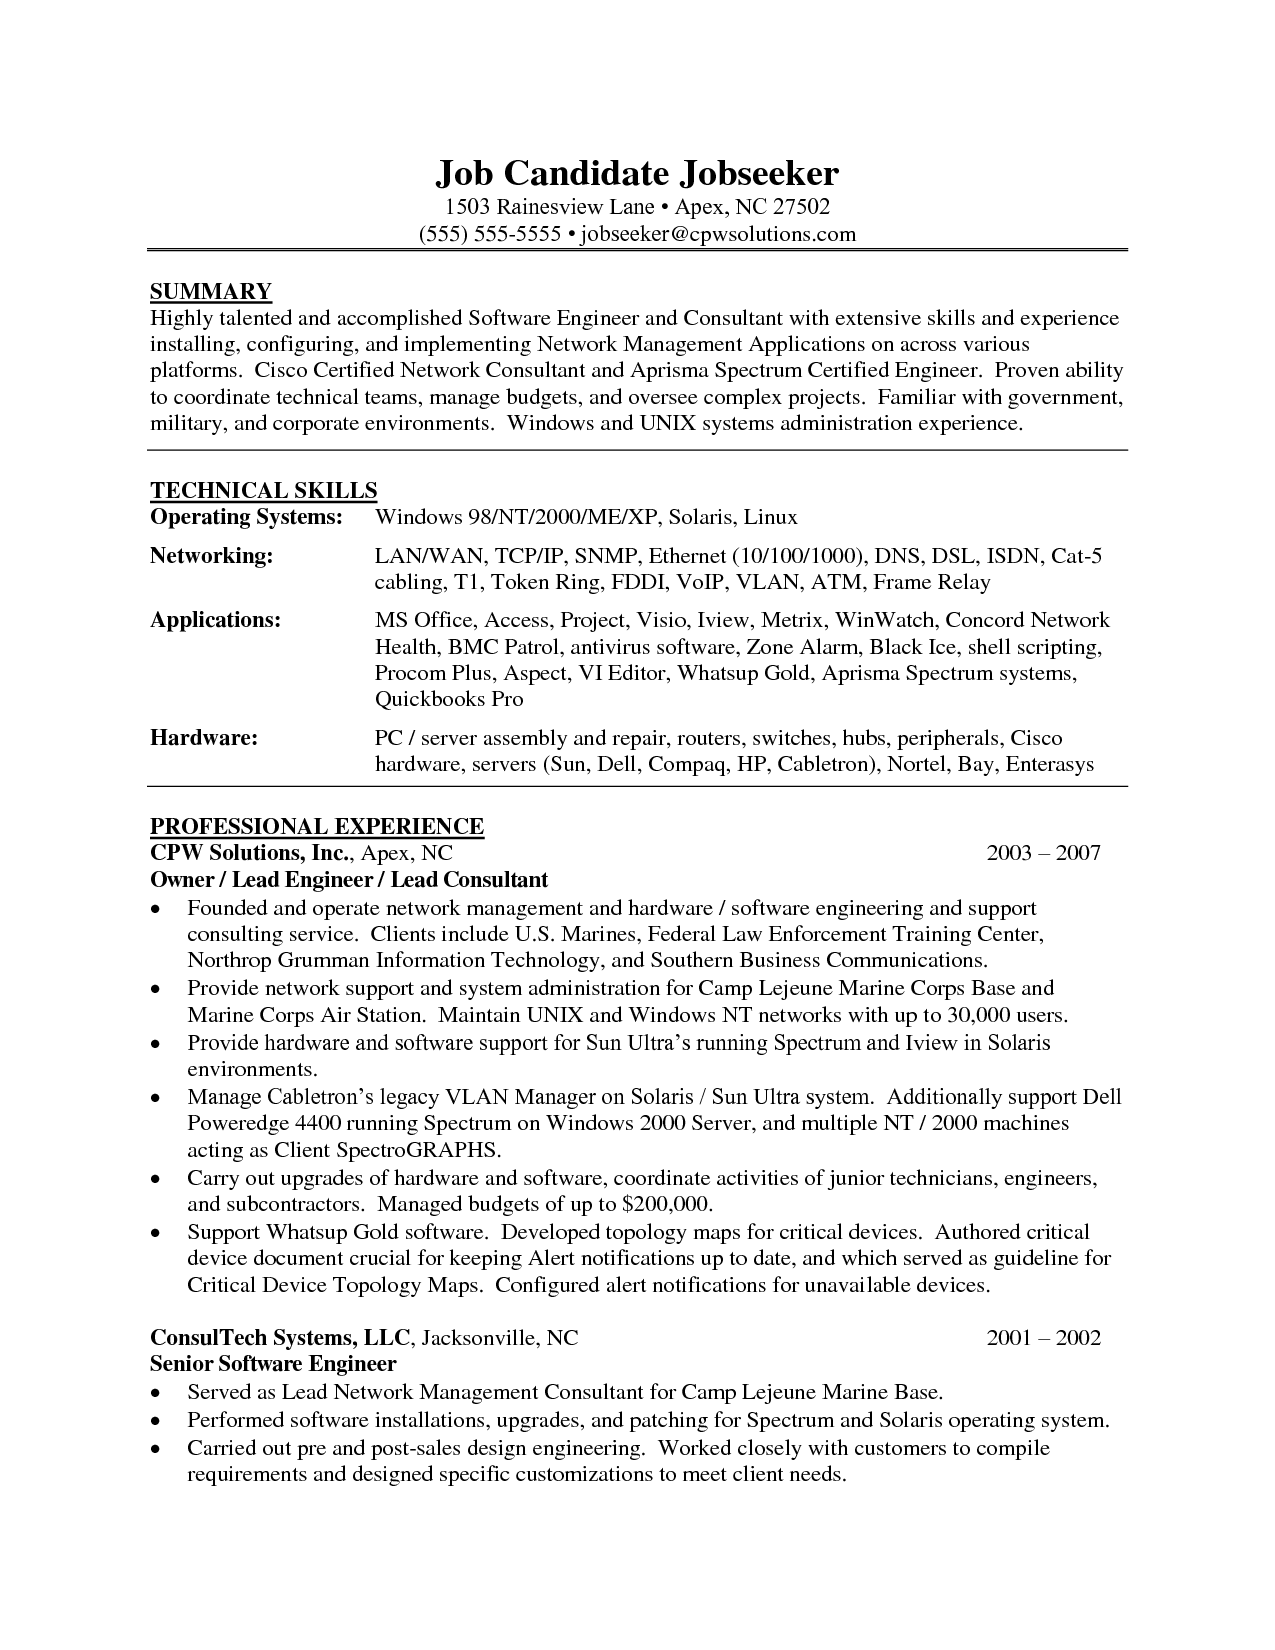 Software Engineer Resume Objective Examples How To Write Software Engineer Resume